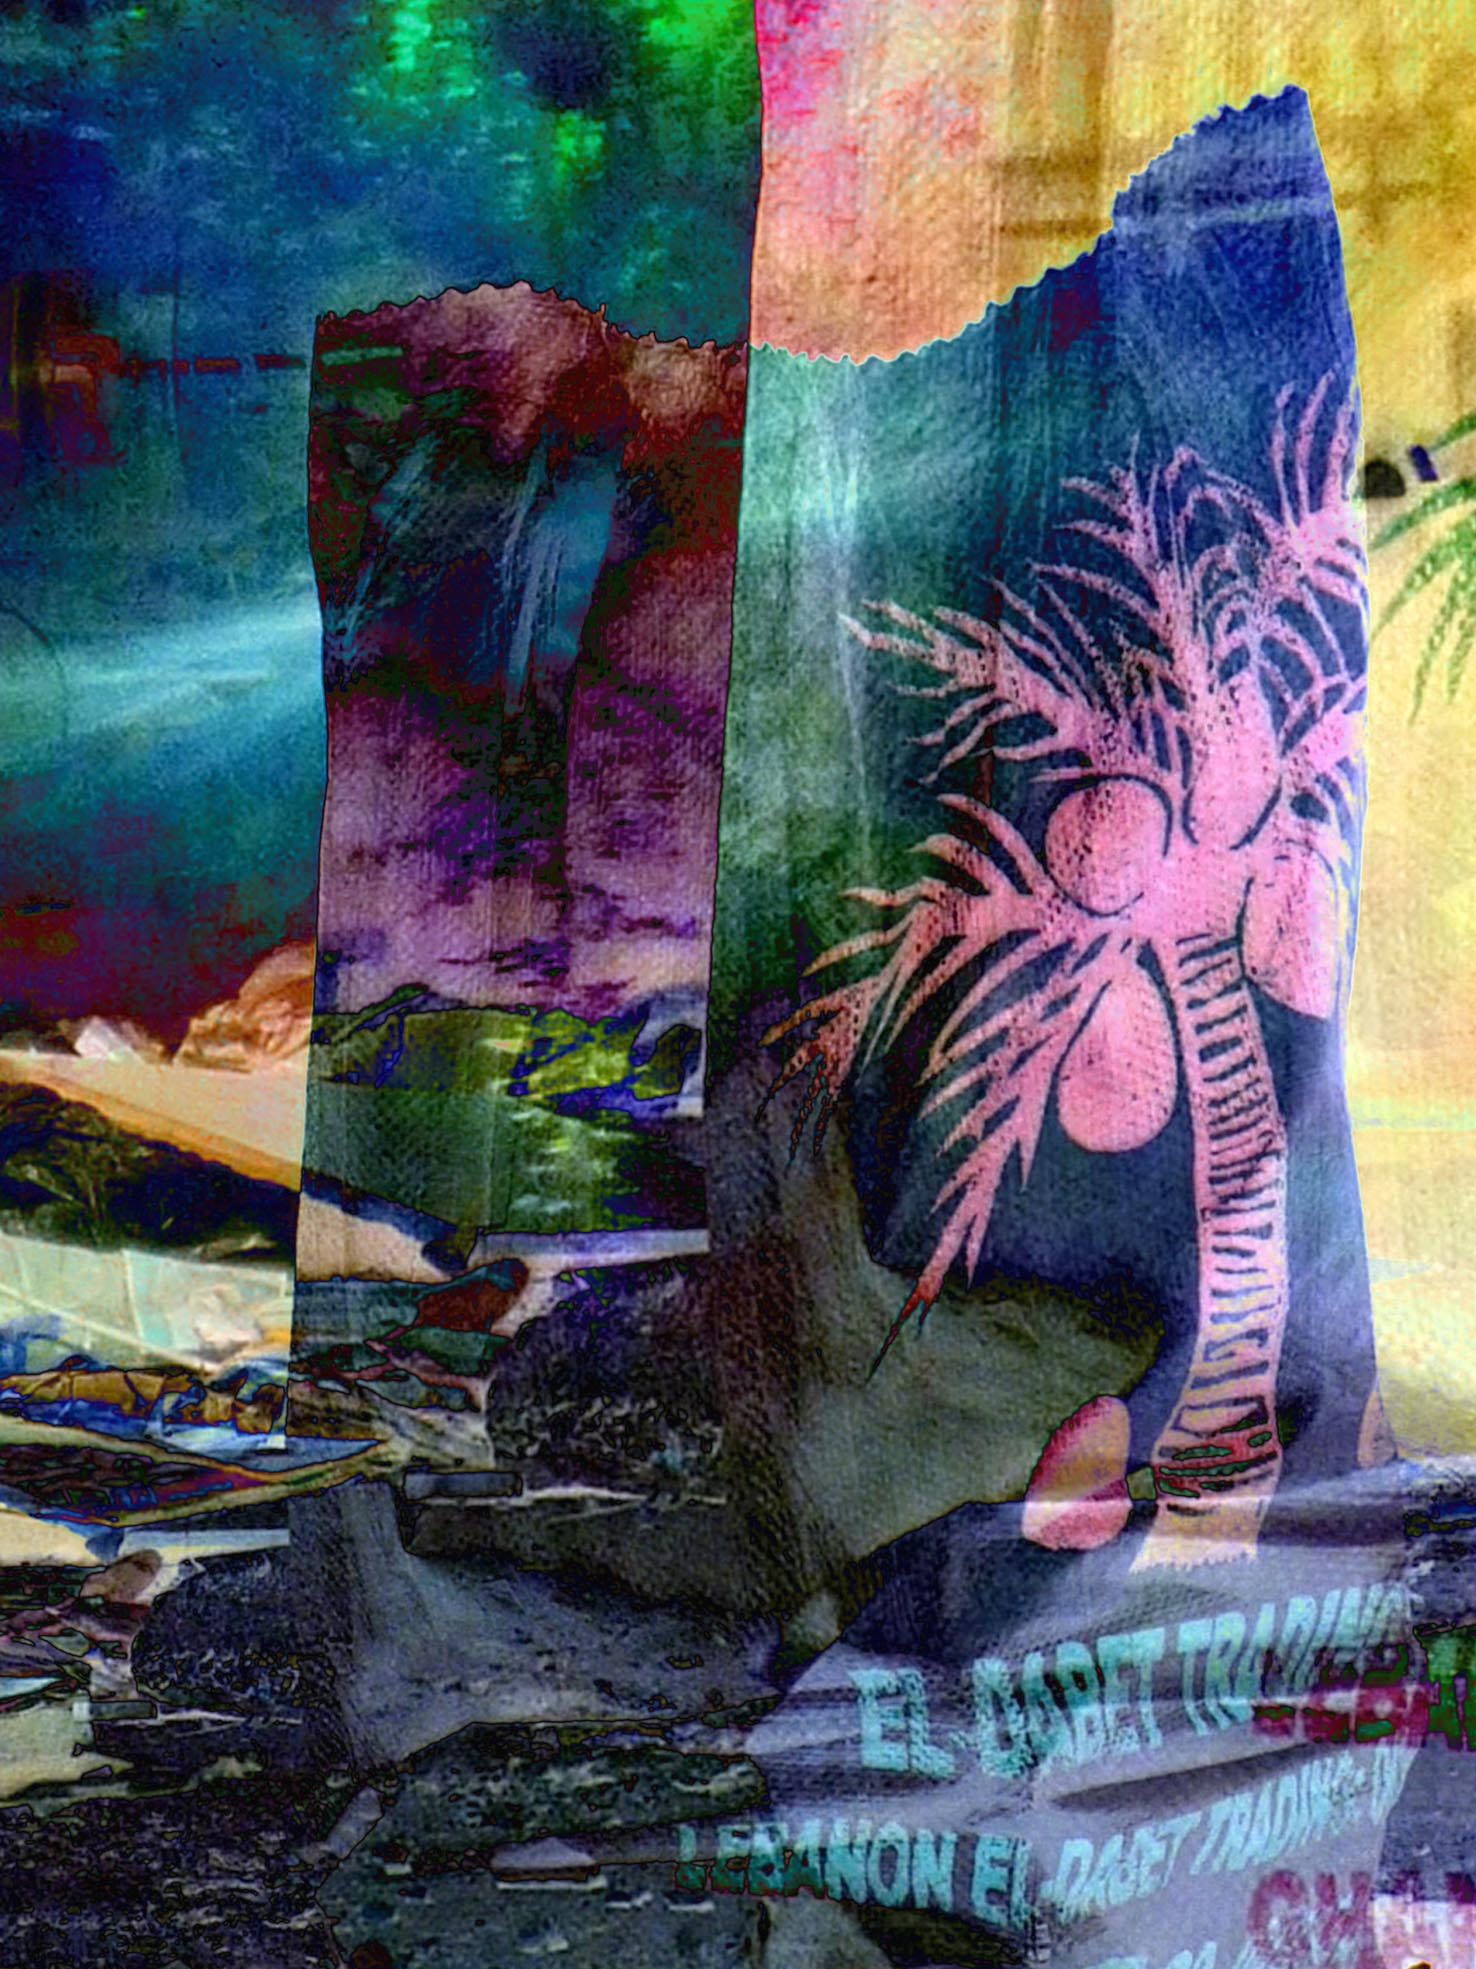 Something always Falls (Palm Tree Trading), Pigmented ink print on rice paper, 80 x 60 cm, 2015.